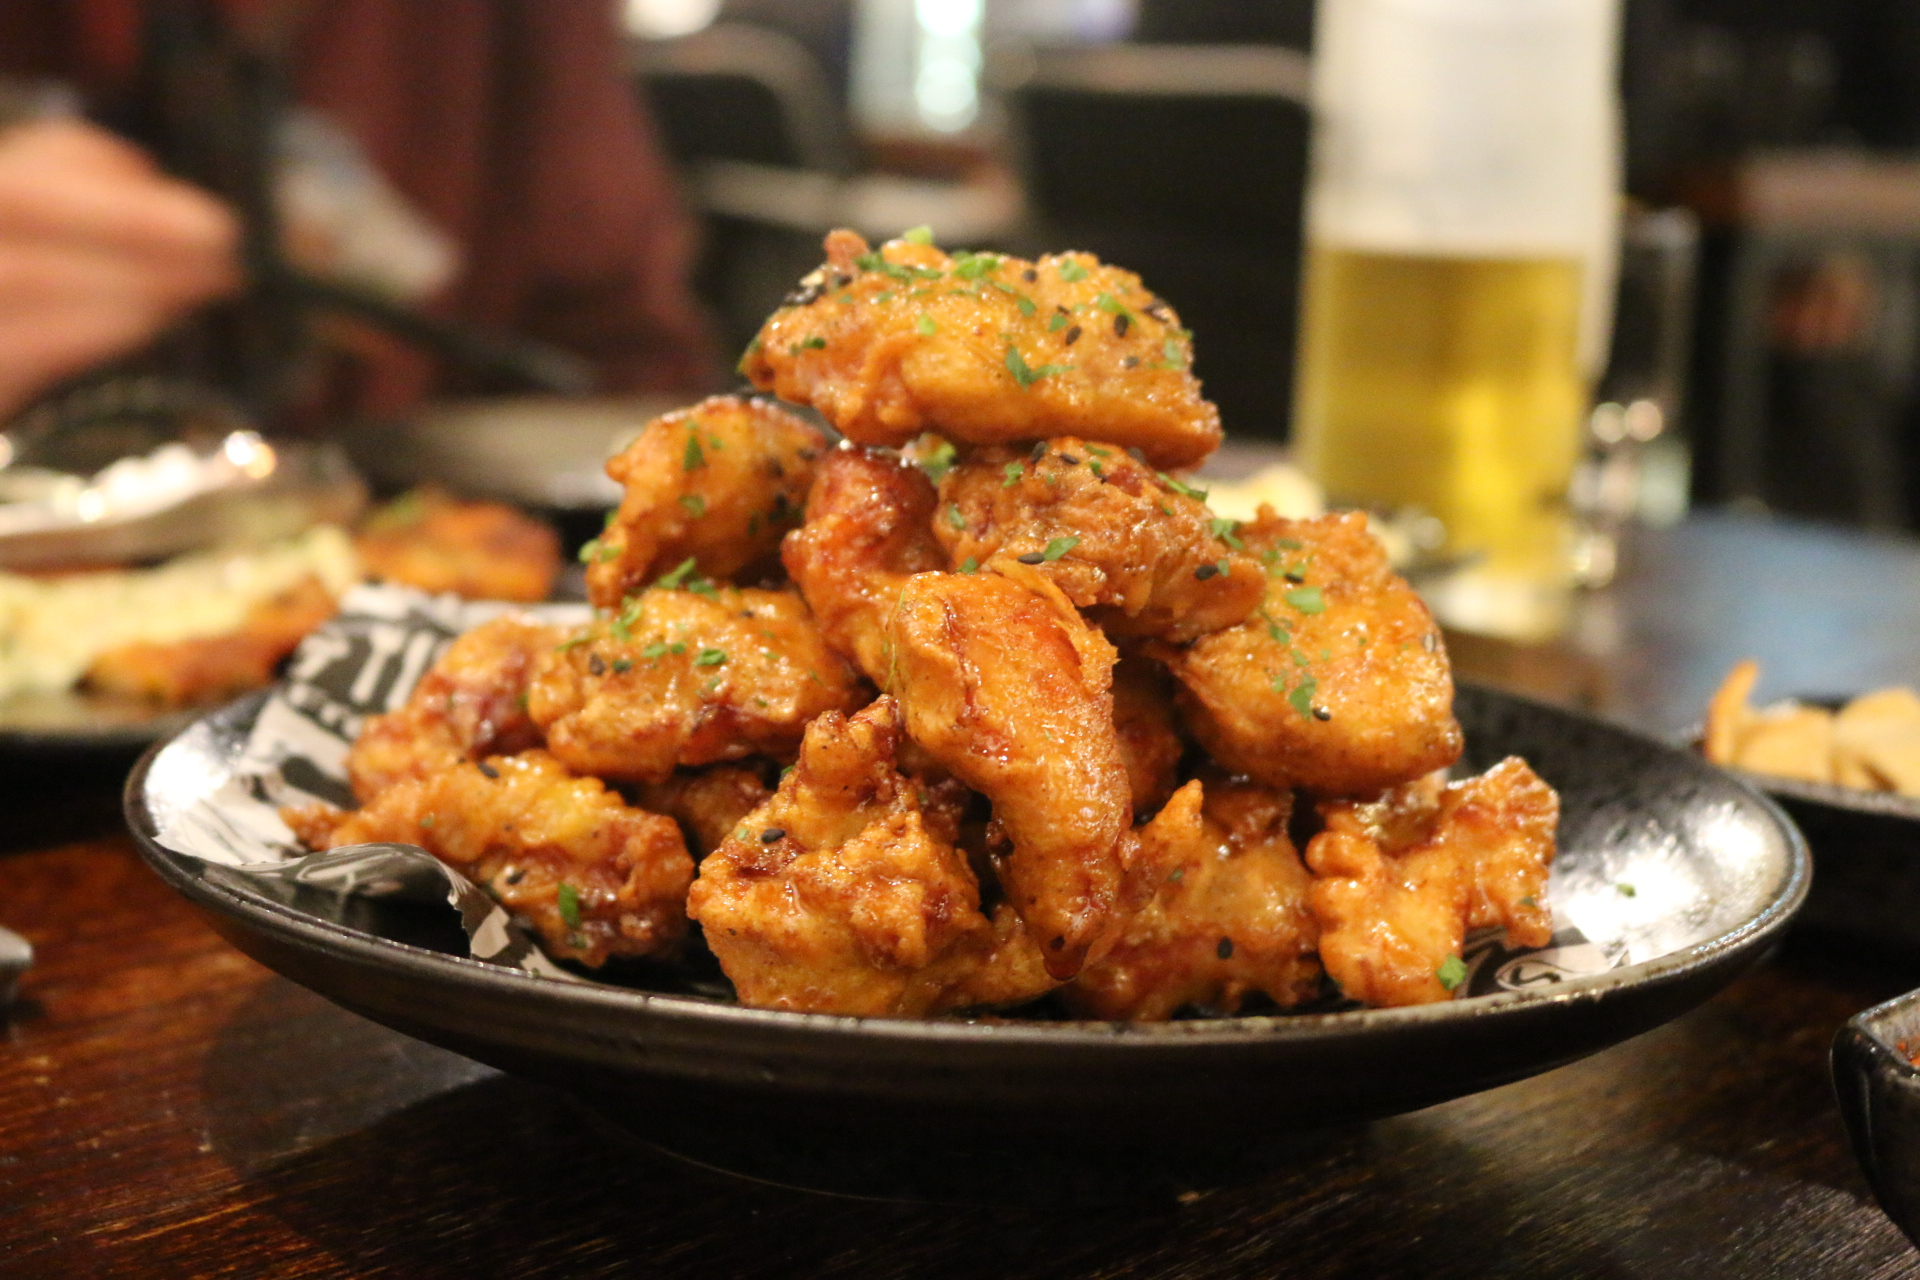 Event: Fried Chicken and Beer Crawl - Eat Canberra